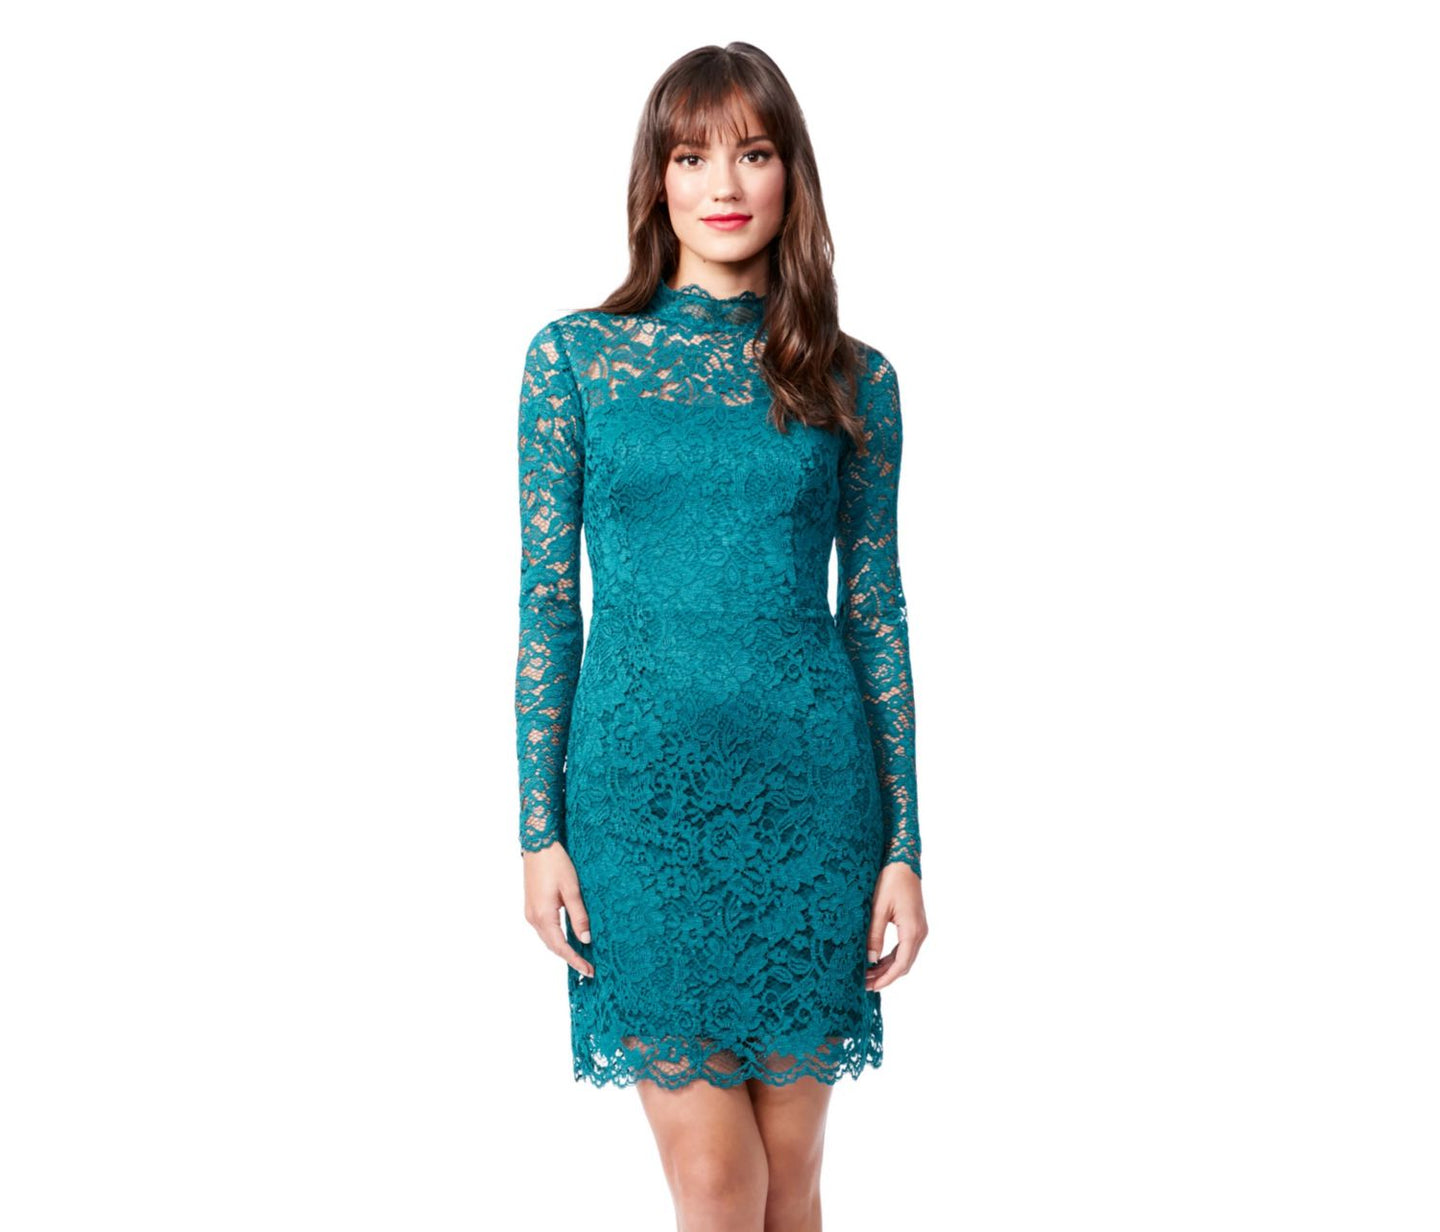 LINGERING LACE DRESS TEAL - APPAREL - Betsey Johnson